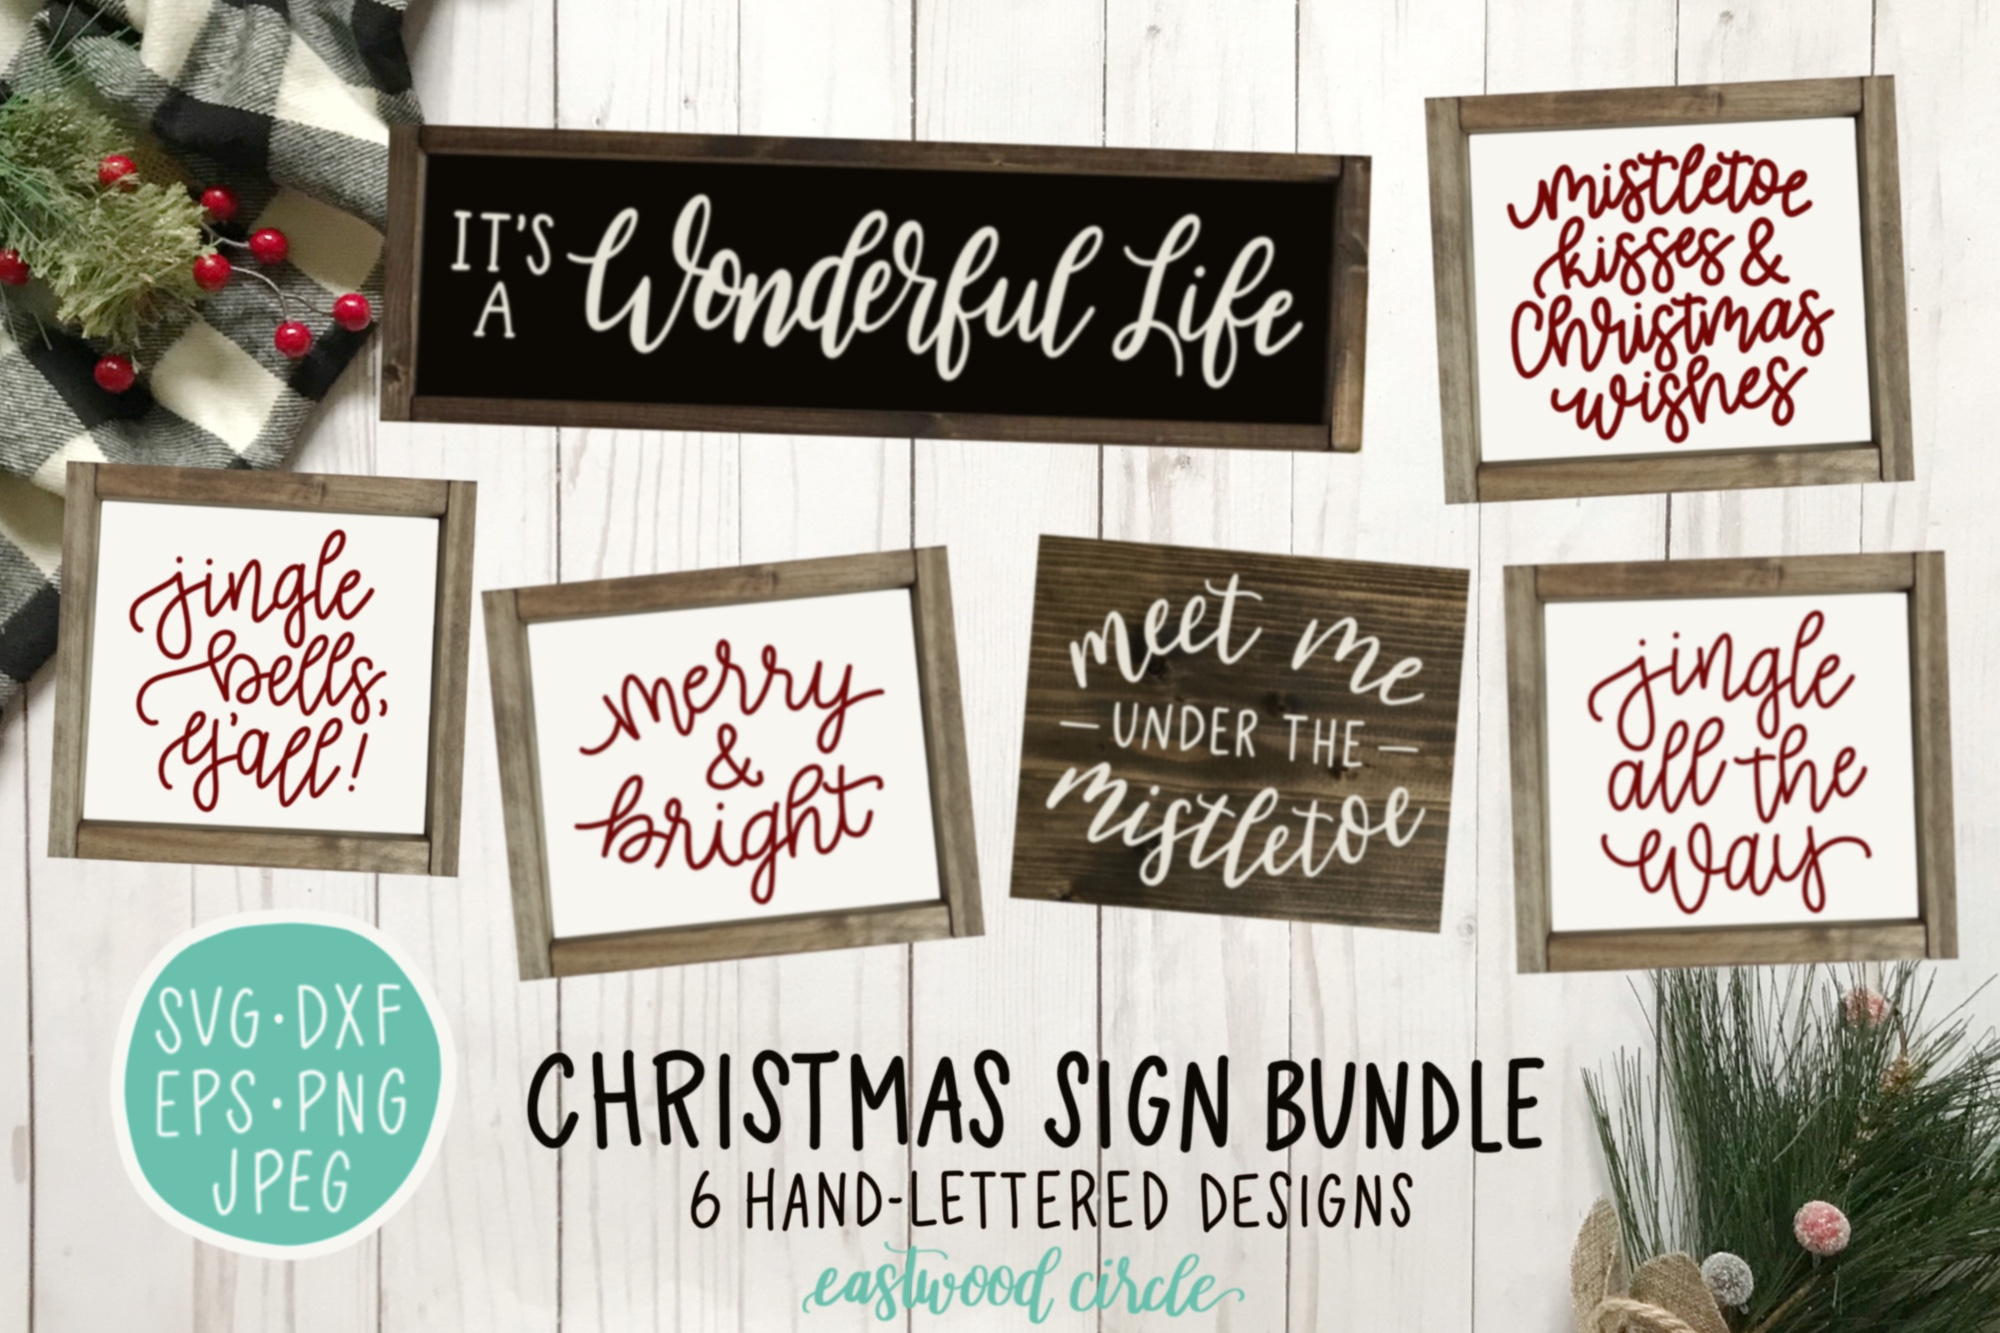 Christmas SVG Bundle - Hand Lettered SVG Files for Signs example image 1